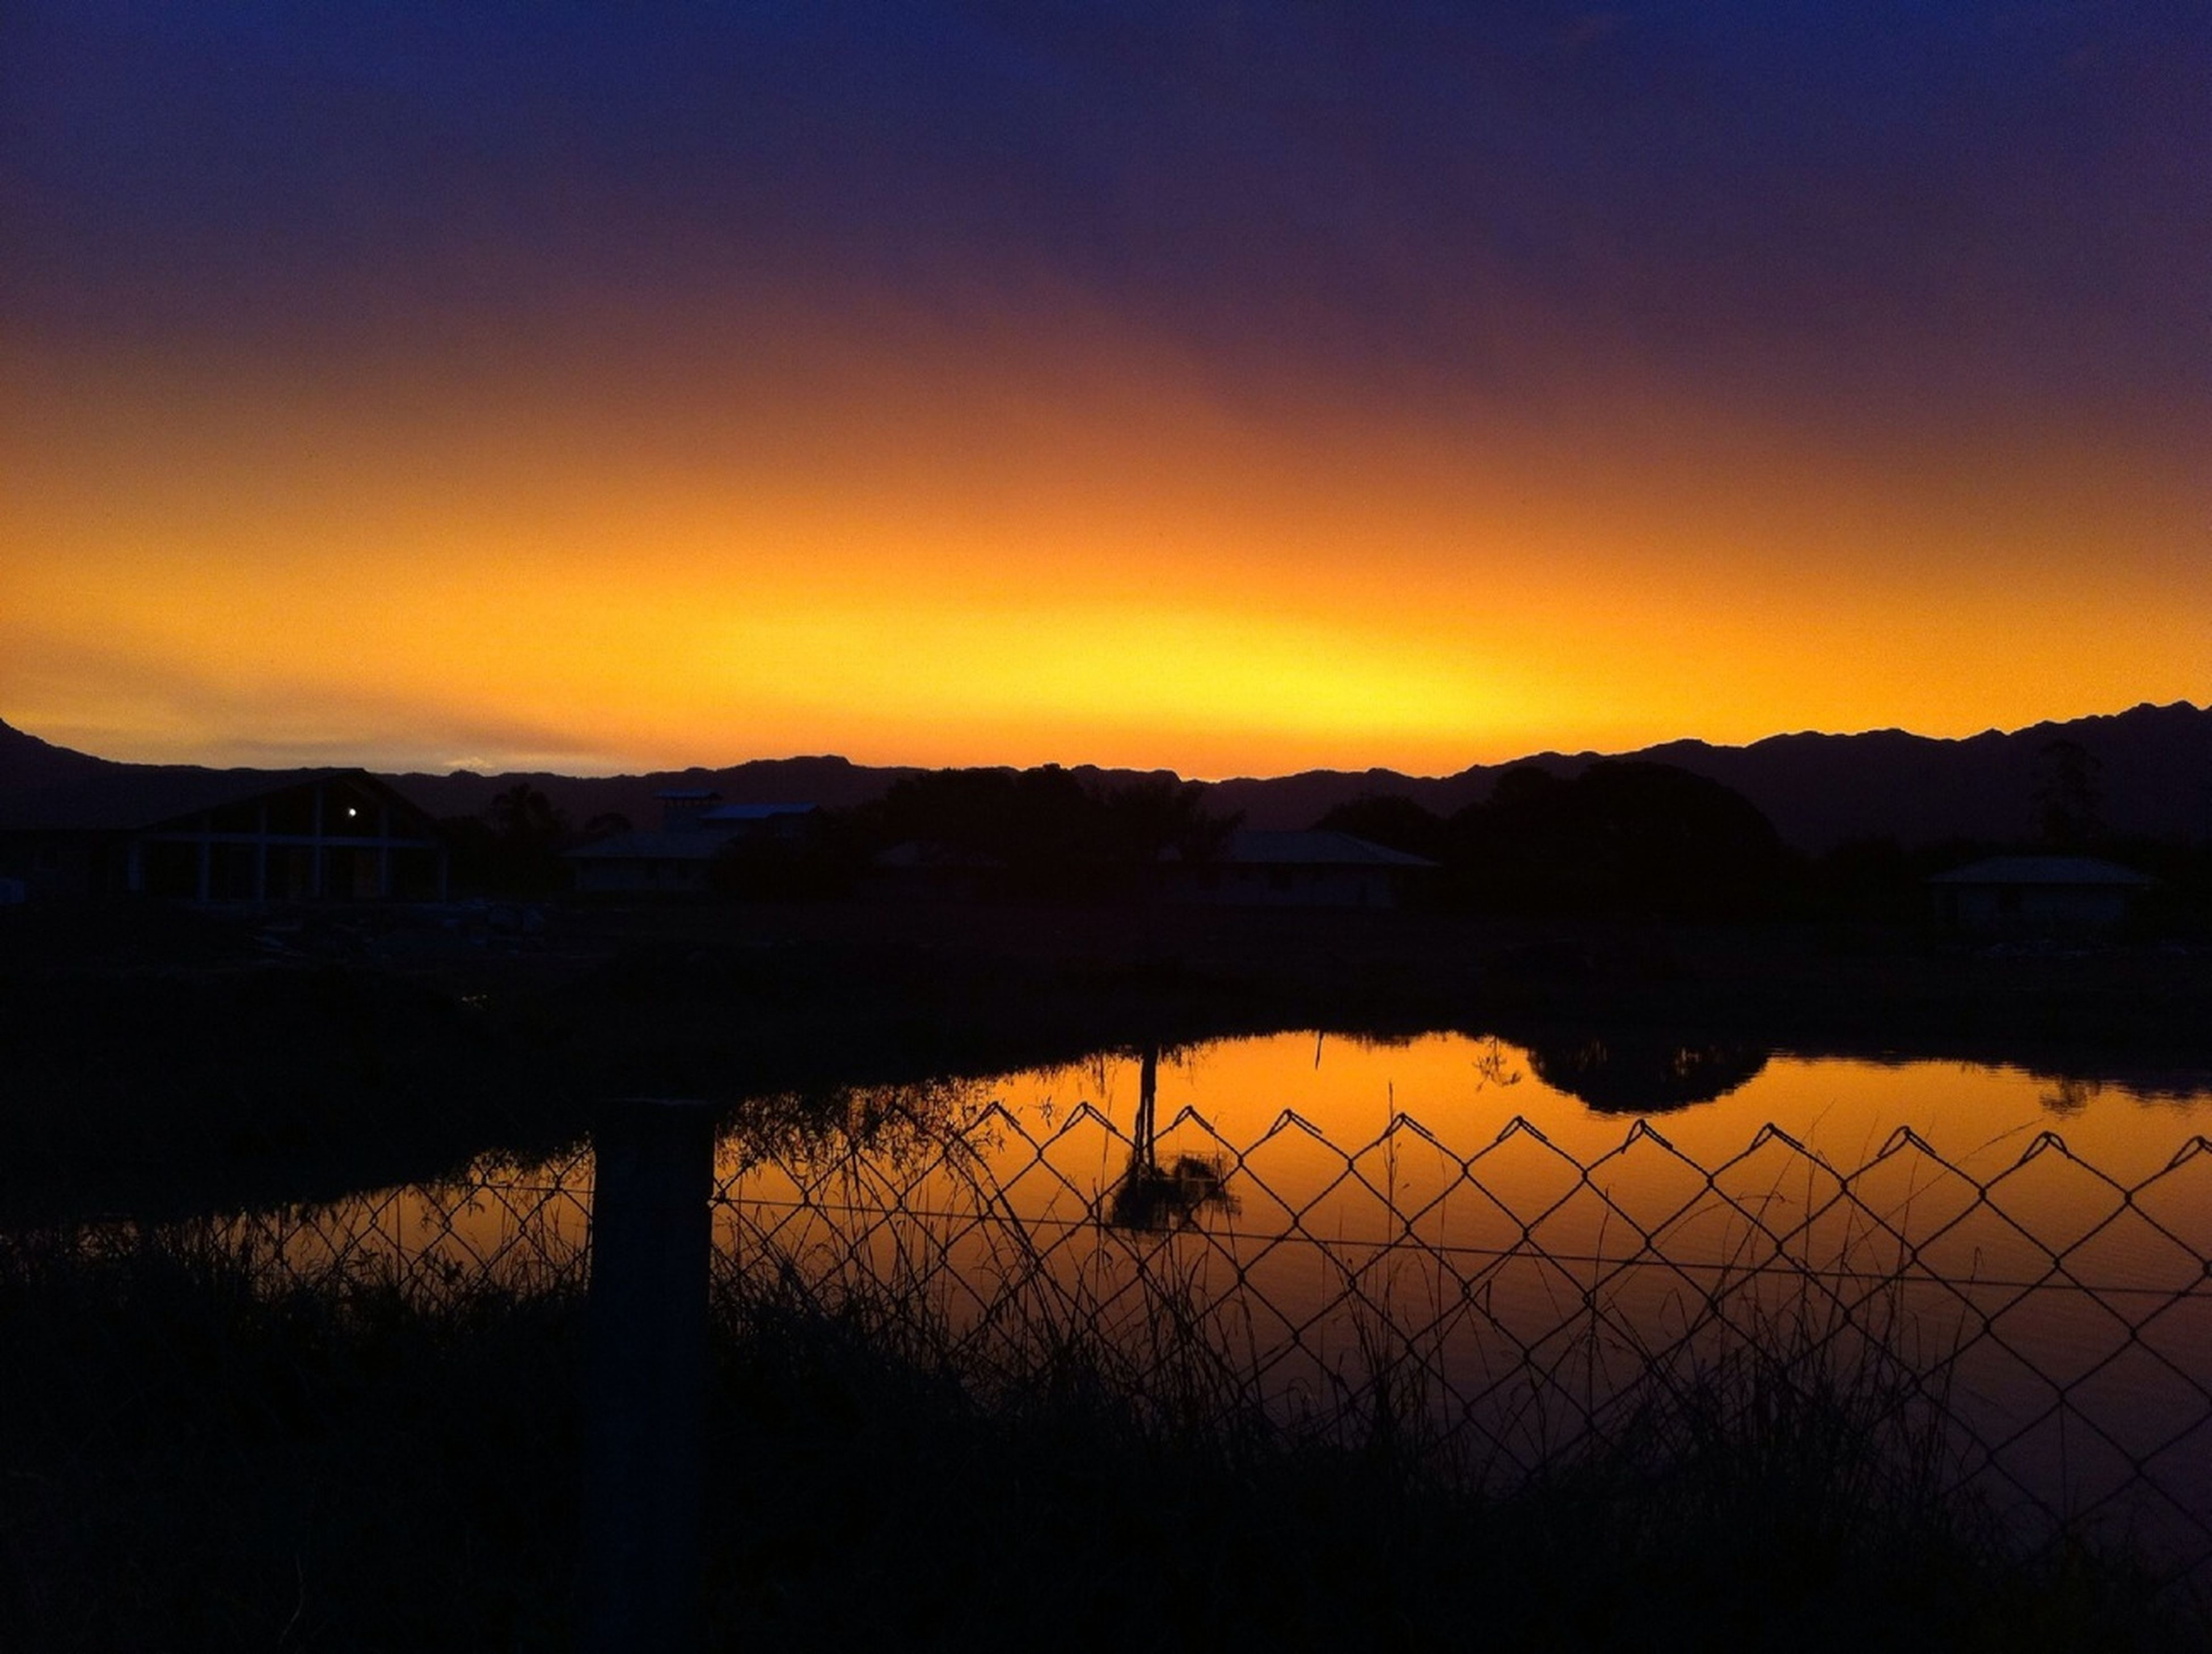 sunset, tranquil scene, tranquility, orange color, scenics, mountain, landscape, beauty in nature, sky, fence, silhouette, idyllic, nature, mountain range, dusk, field, railing, water, no people, outdoors